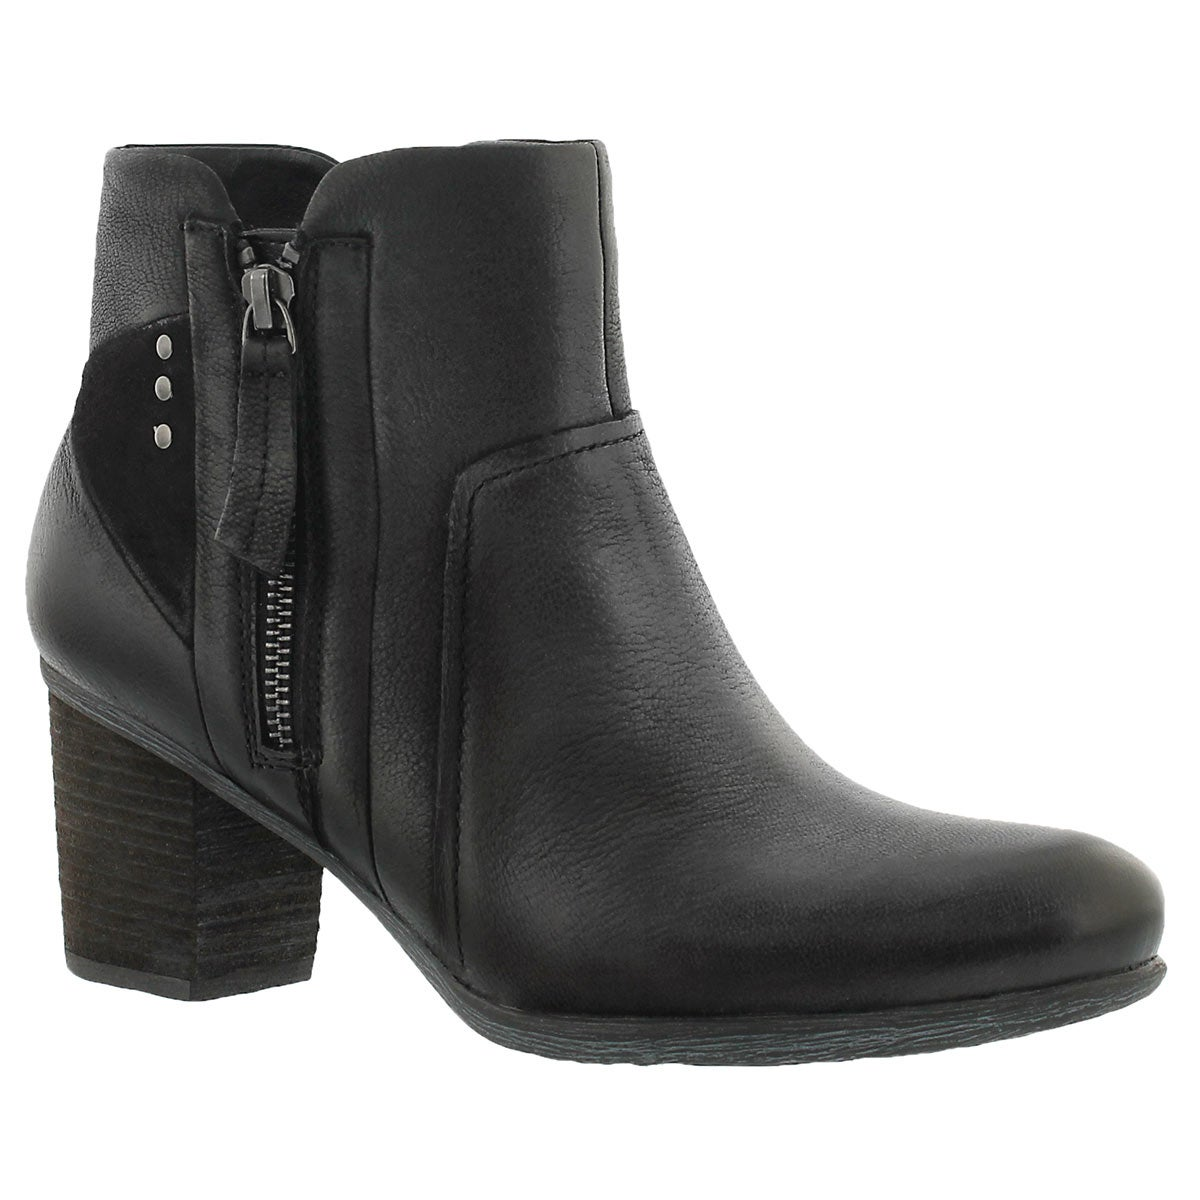 Women's BRITNEY 41 black leather ankle boots